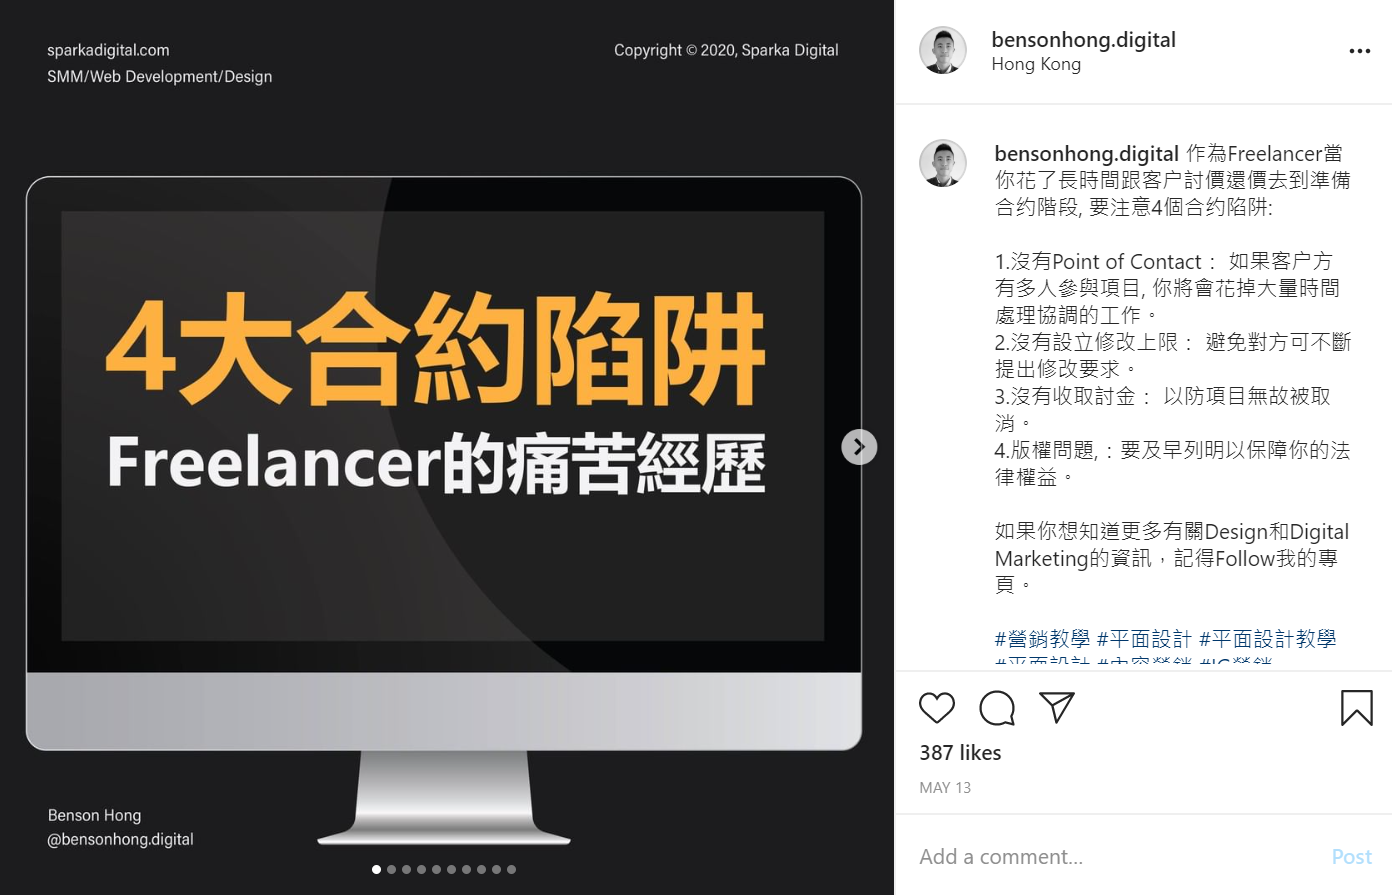 Screenshot of Sparka Digital's Instagram post about freelancer contracts